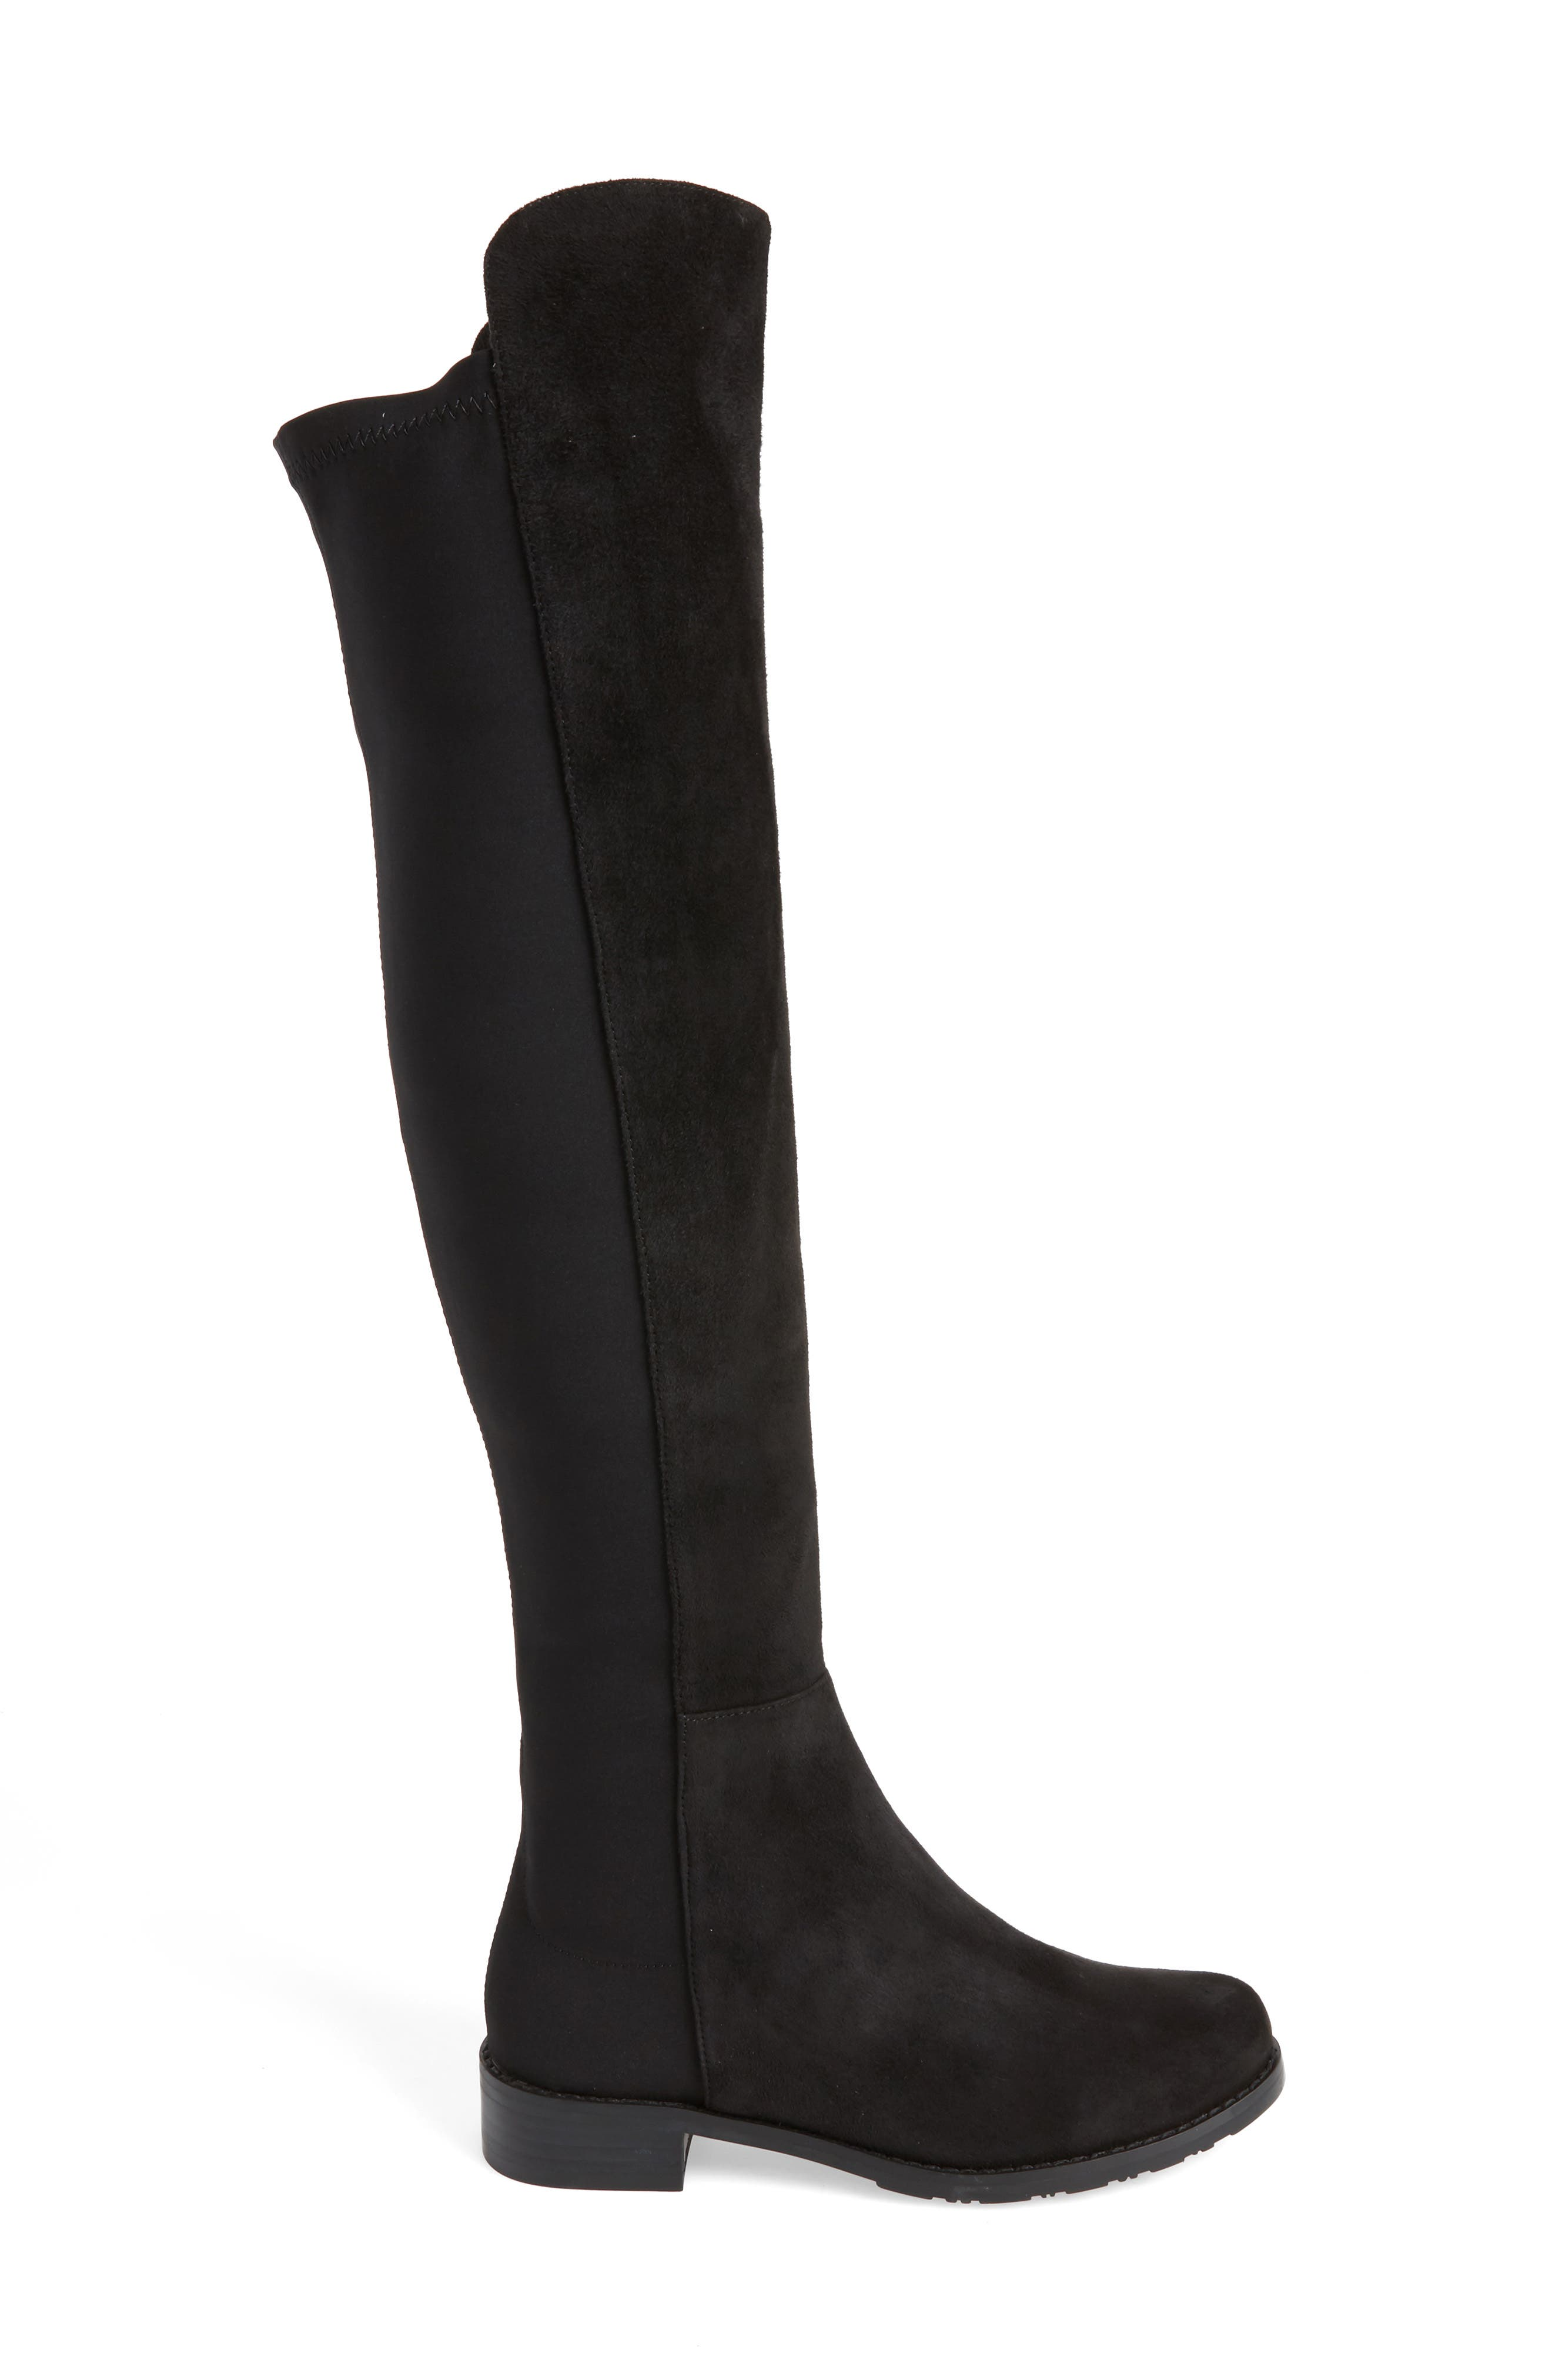 Panache Tall Boot,                             Alternate thumbnail 3, color,                             Black Suede